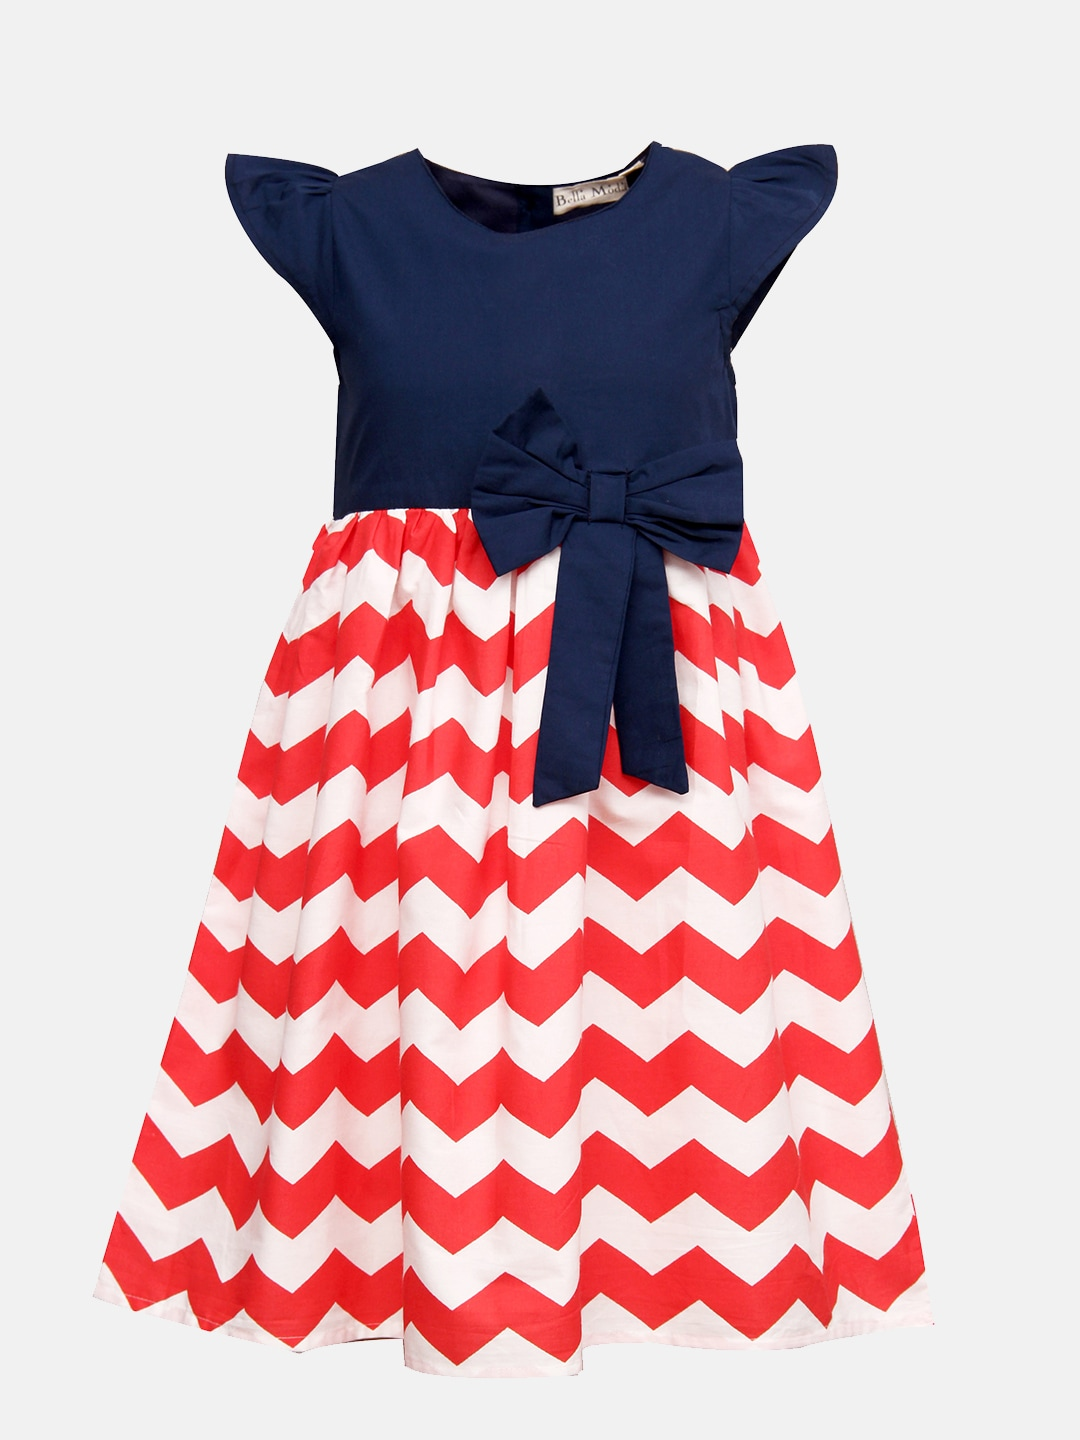 790e06bbddcd Kids Dresses - Buy Kids Clothing Online in India